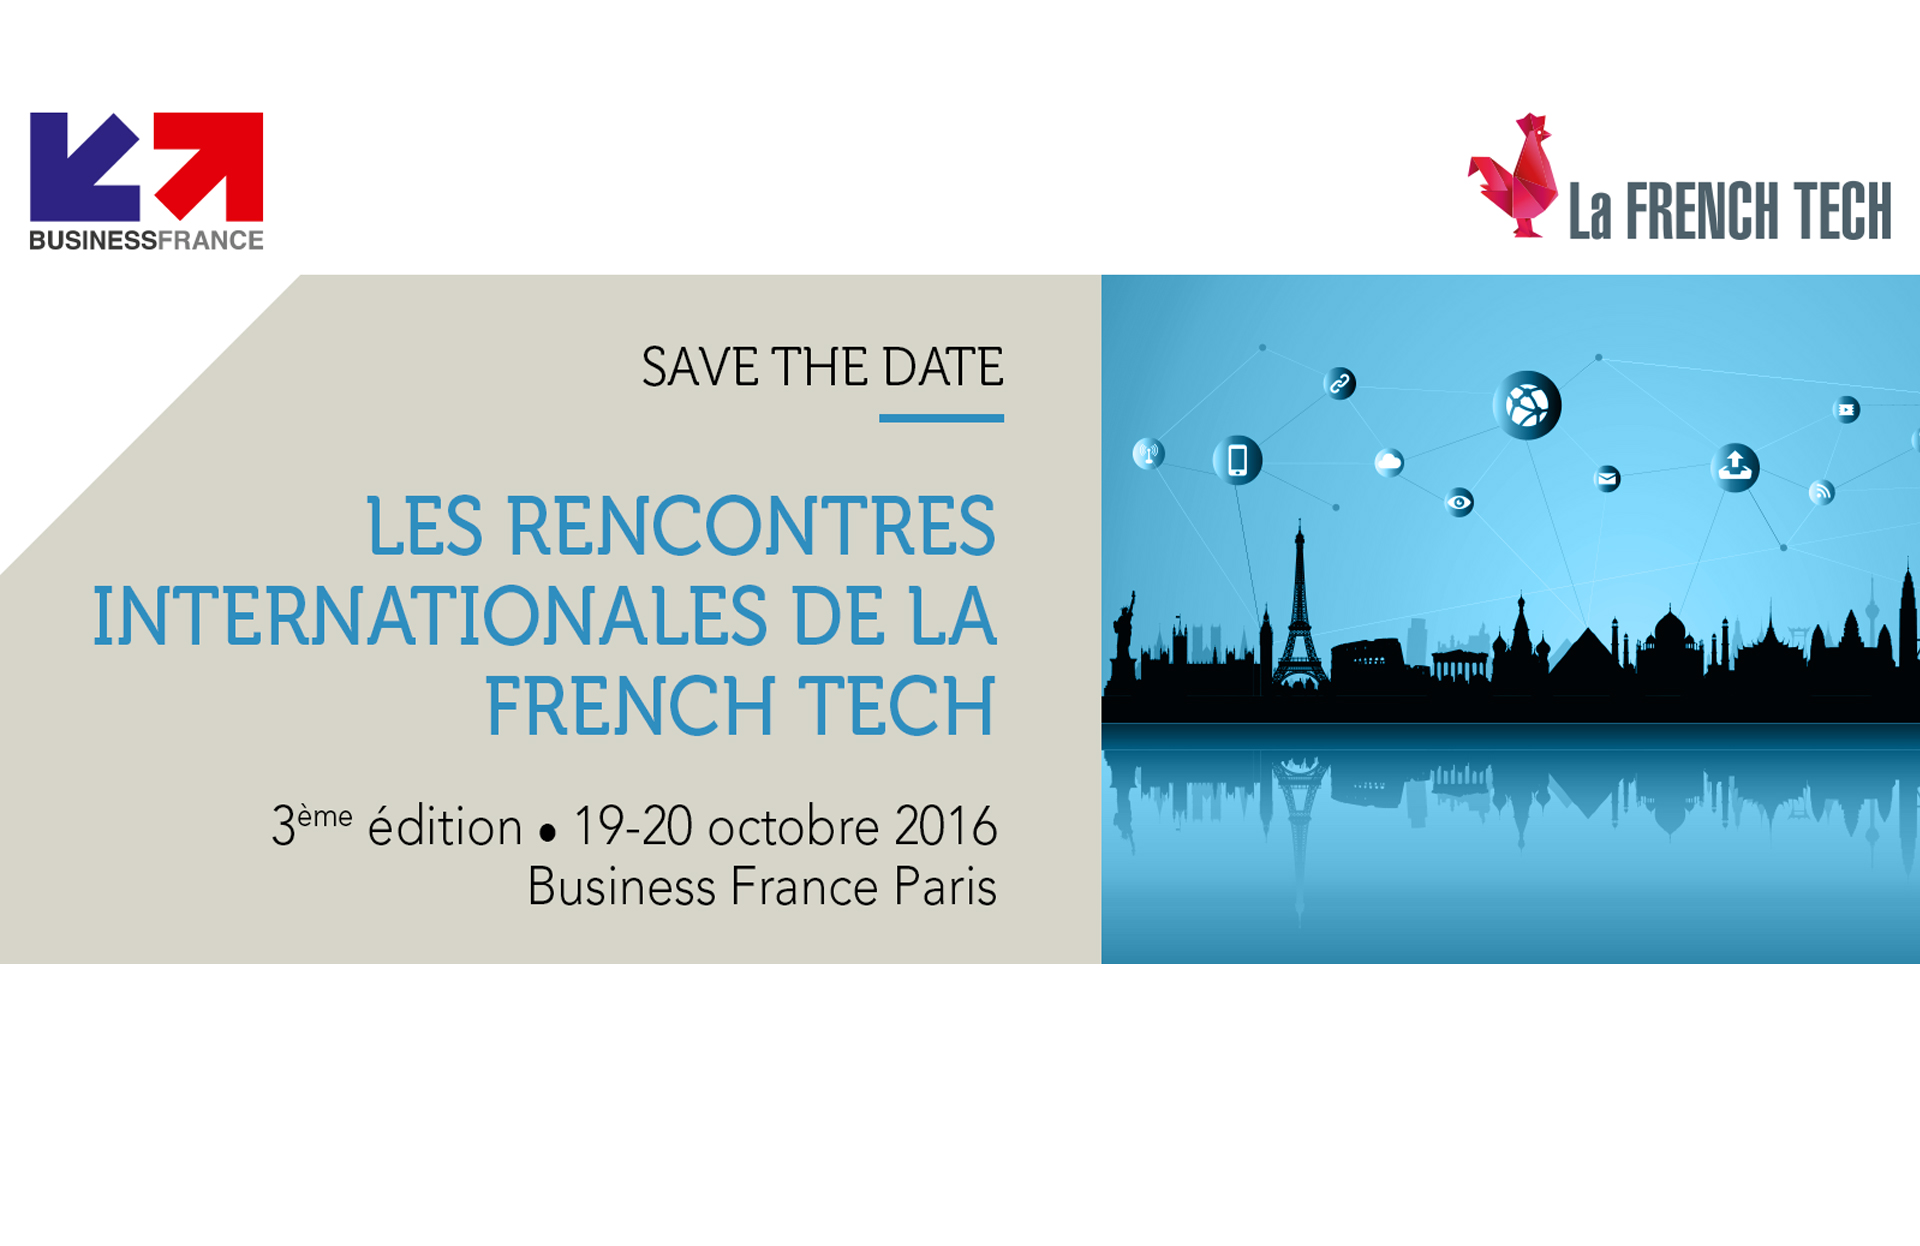 Sites de rencontres internationales